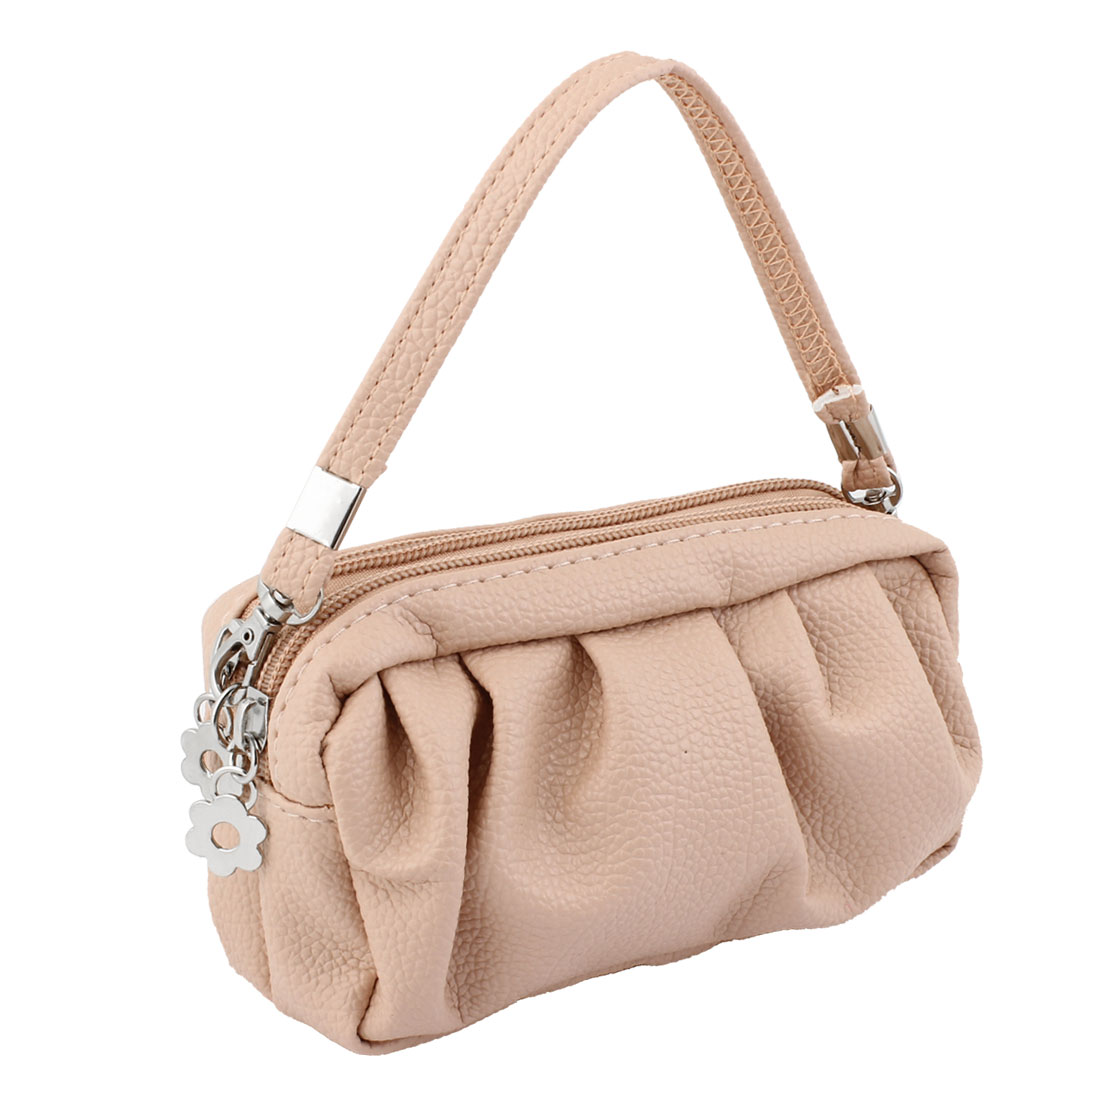 Ruched Patter Zipper Closure Handbag Bag Pale Pink w Hand Strap for Lady